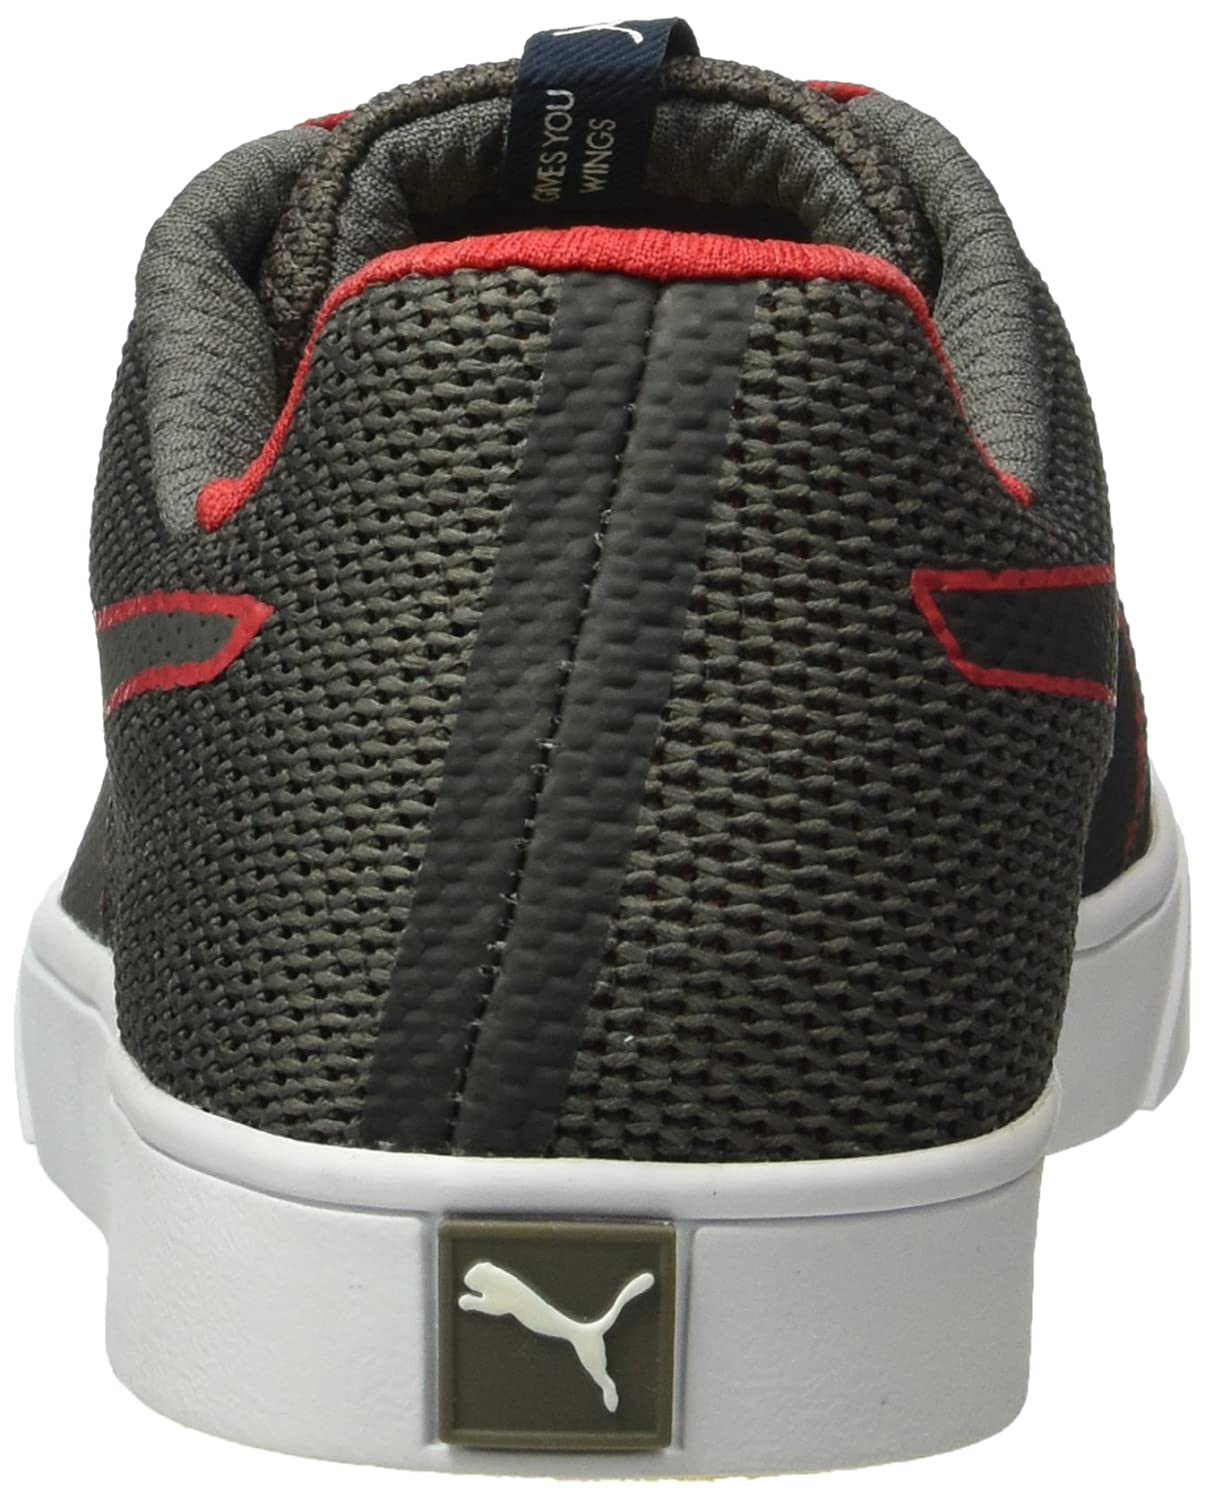 7bba9f9265f6 Puma Men s IRBR Wings Vulc Sneakers  Buy Online at Low Prices in India -  Amazon.in